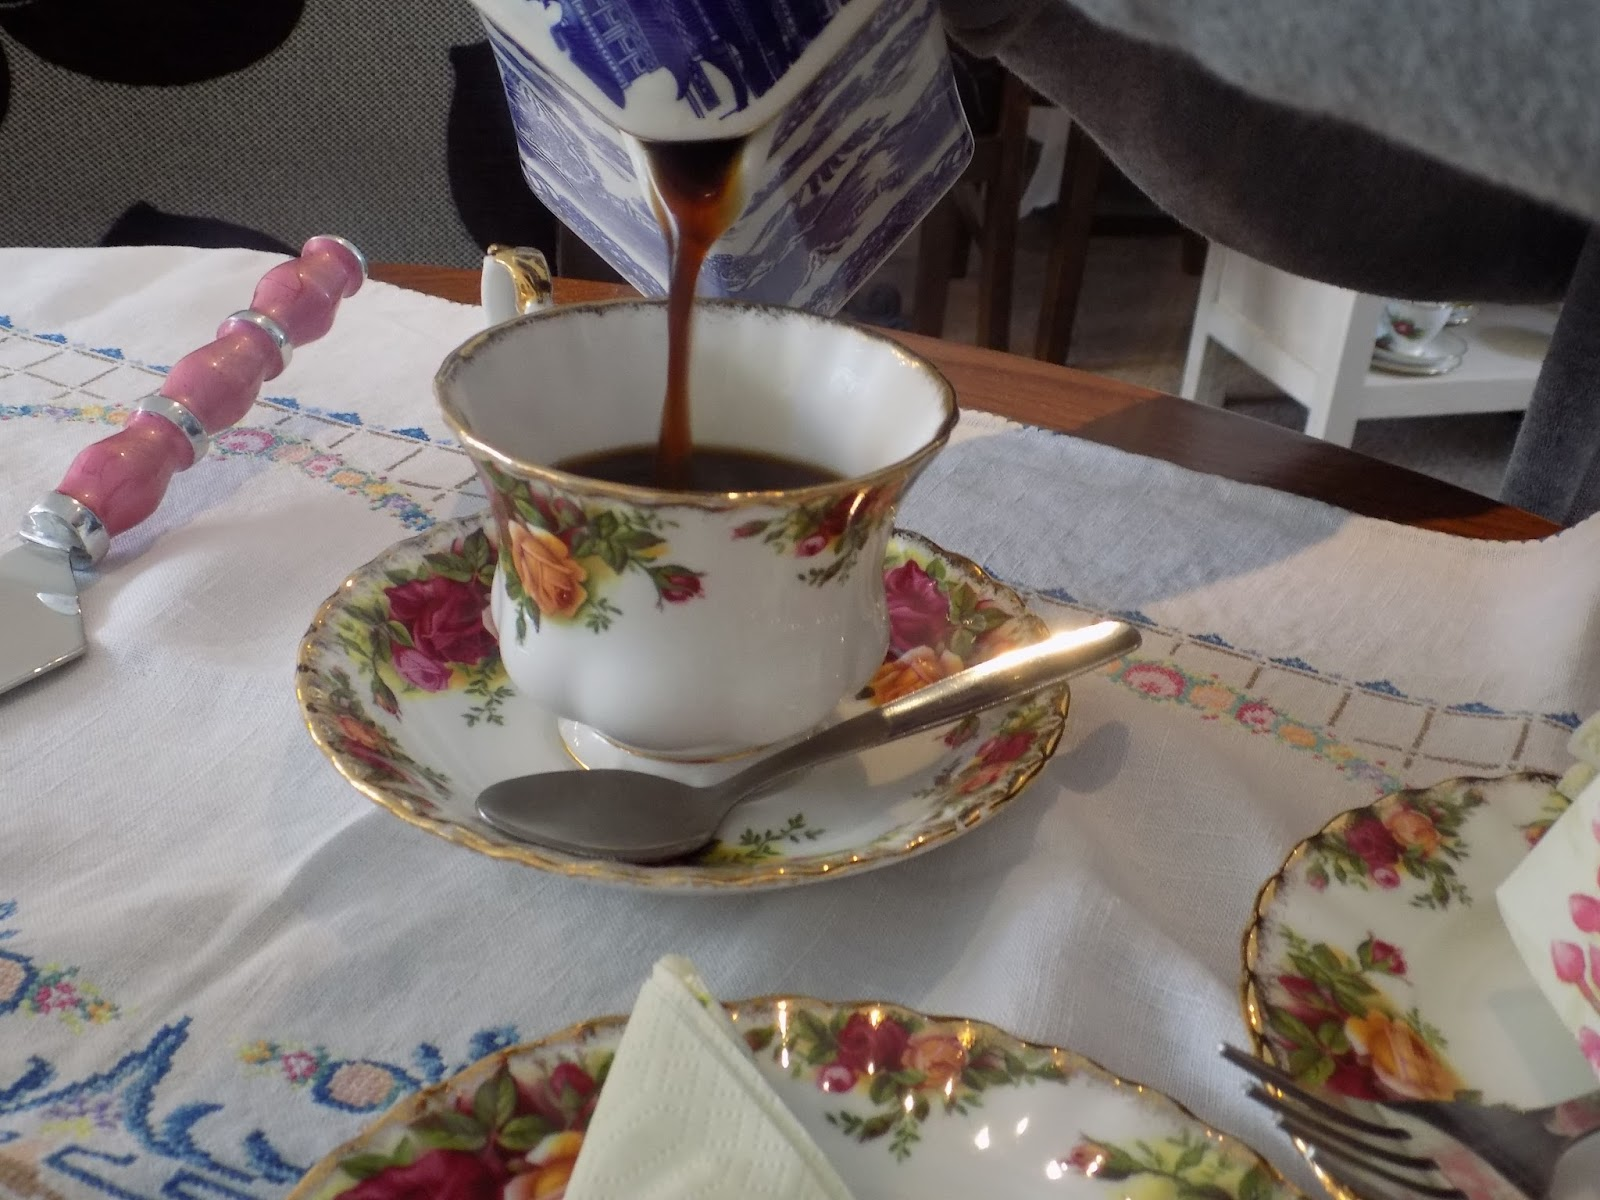 Afternoon tea at Helene's tearoom, Skipton